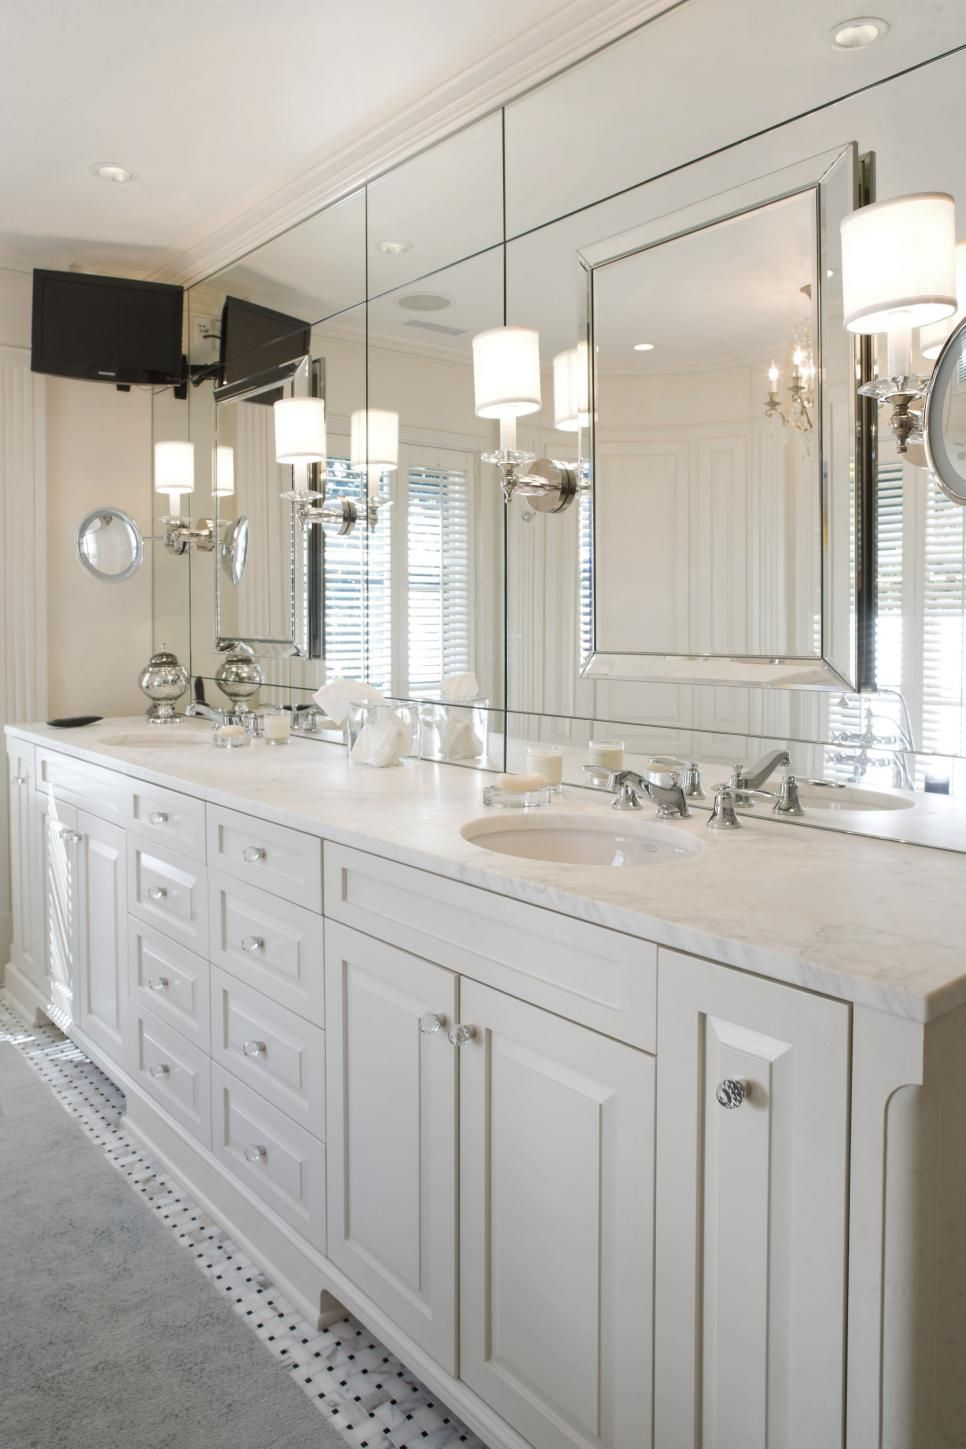 A Spacious White Vanity With A Marble Countertop Gives This Master